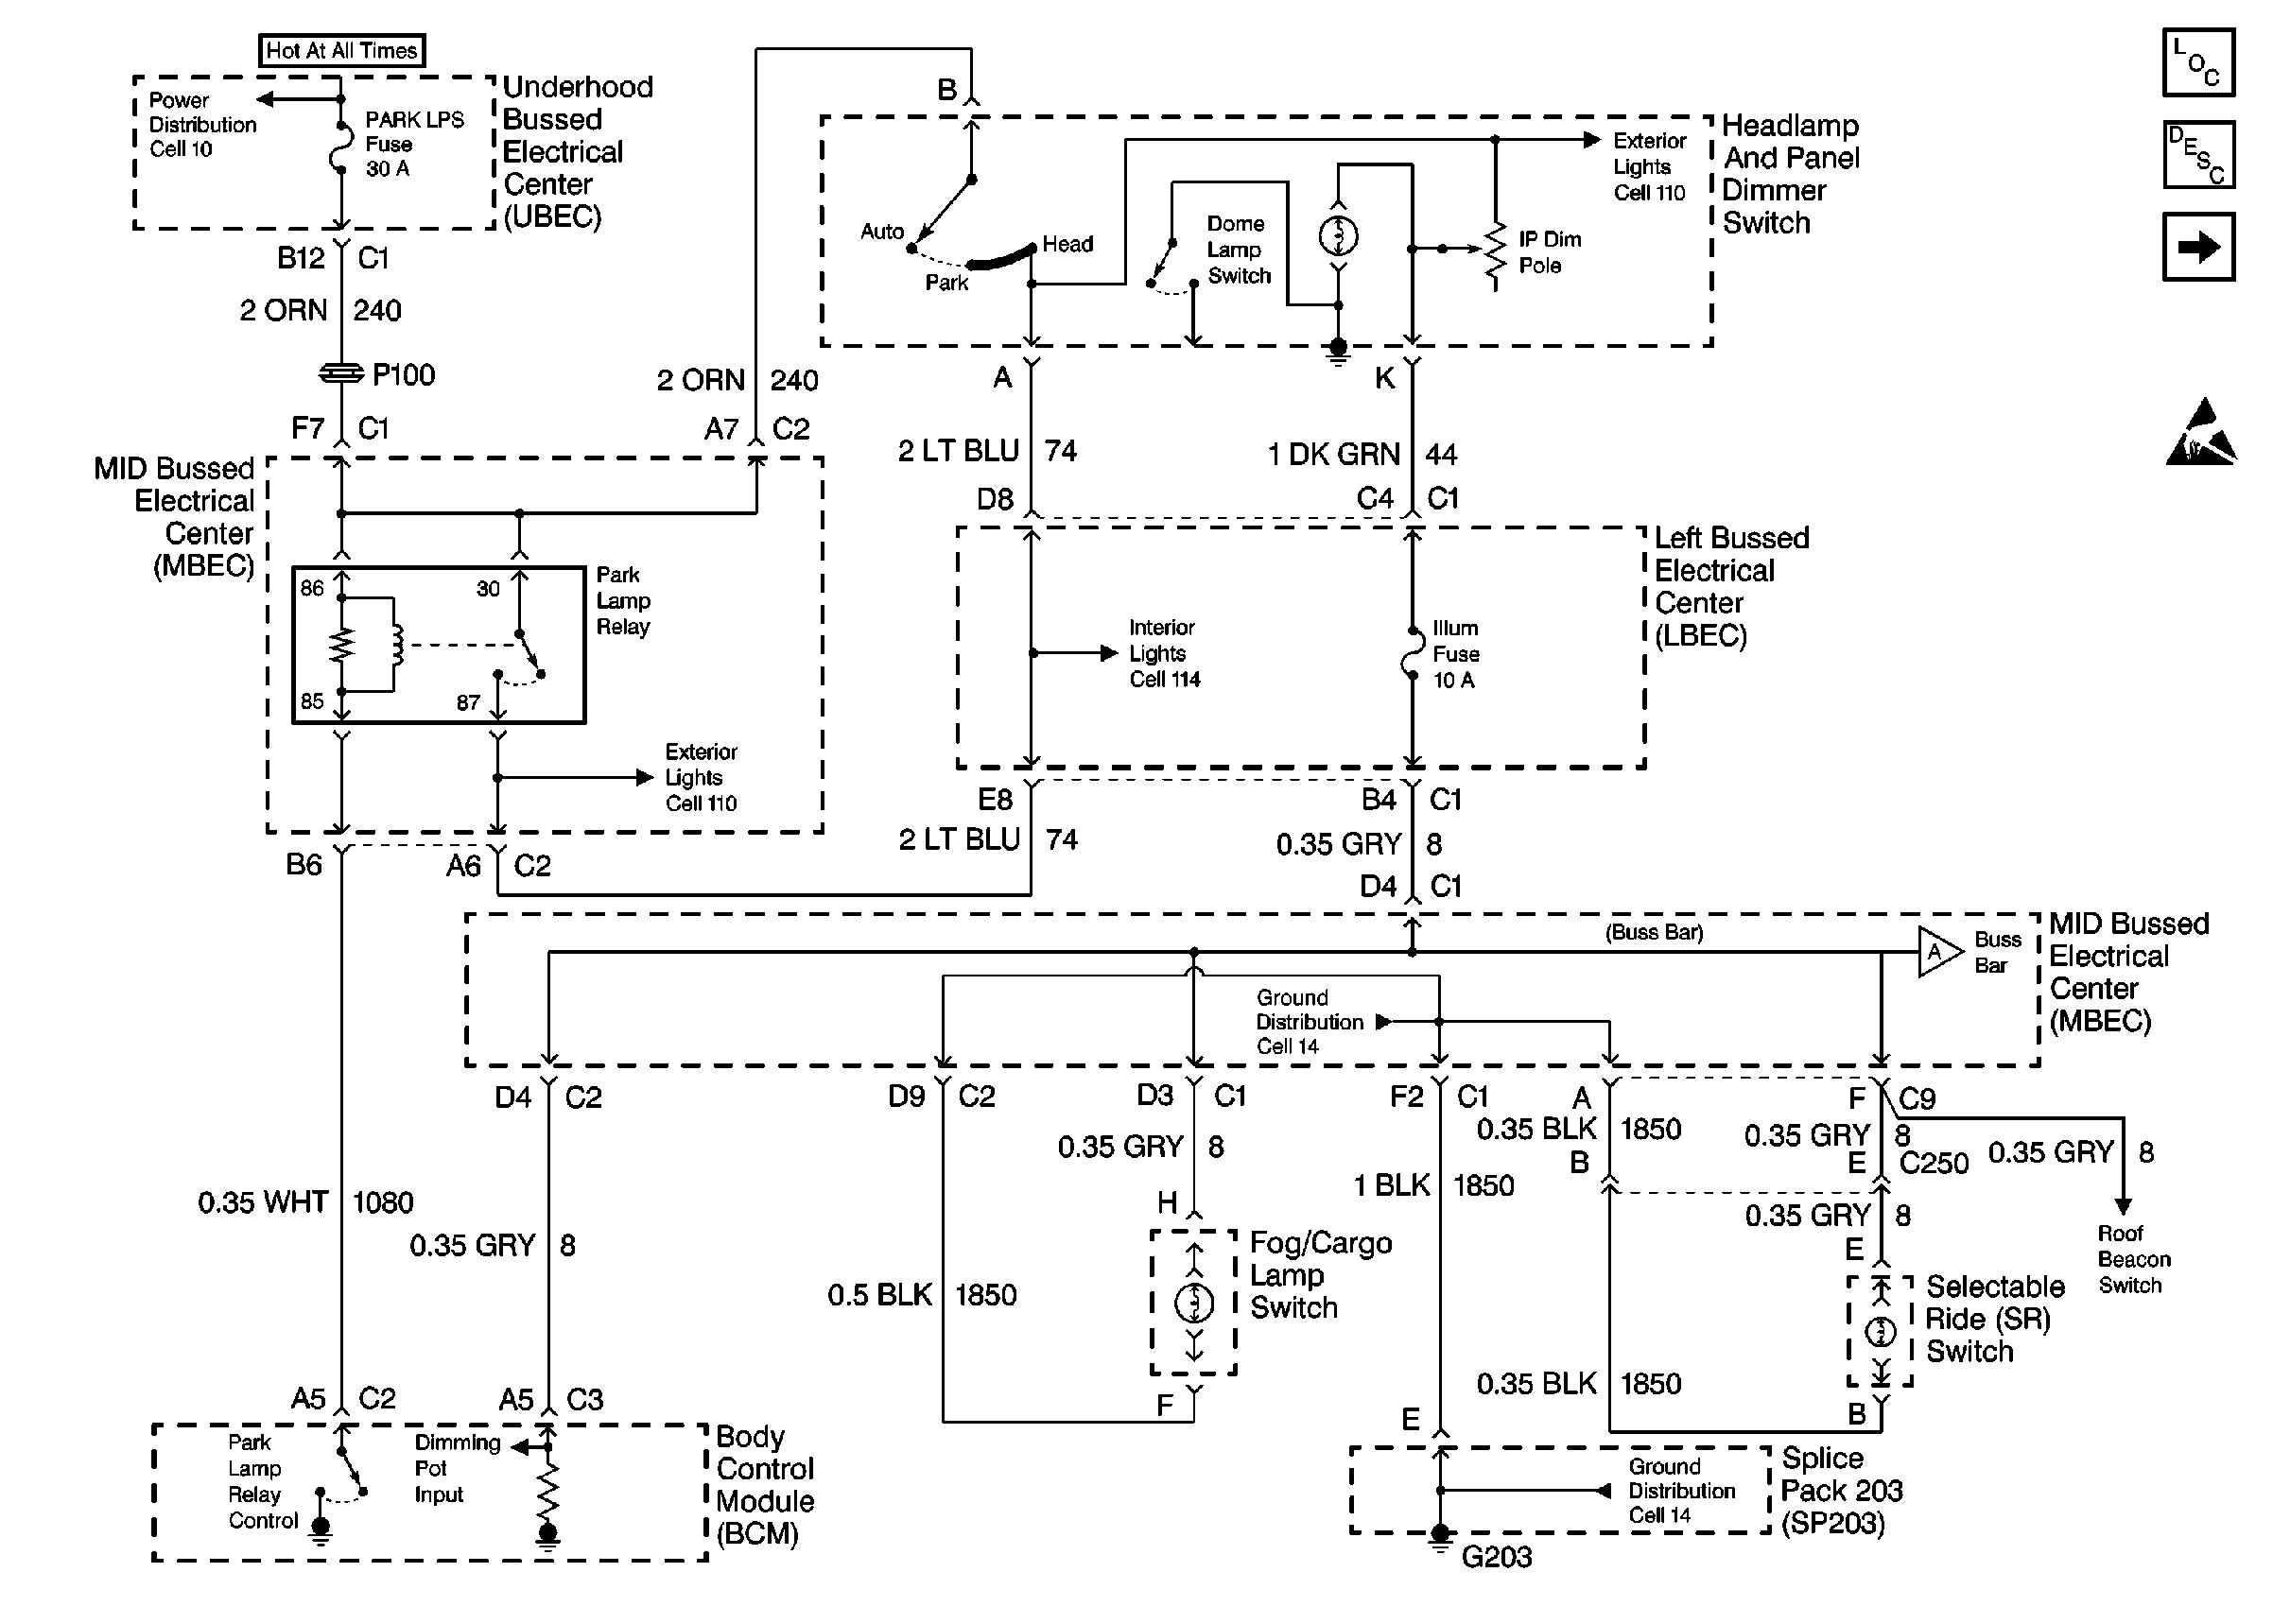 chevy hhr fuse diagram wiring diagram for you all u2022 rh onlinetuner co 2010 chevy hhr fuse box location 2010 chevy hhr fuse box location